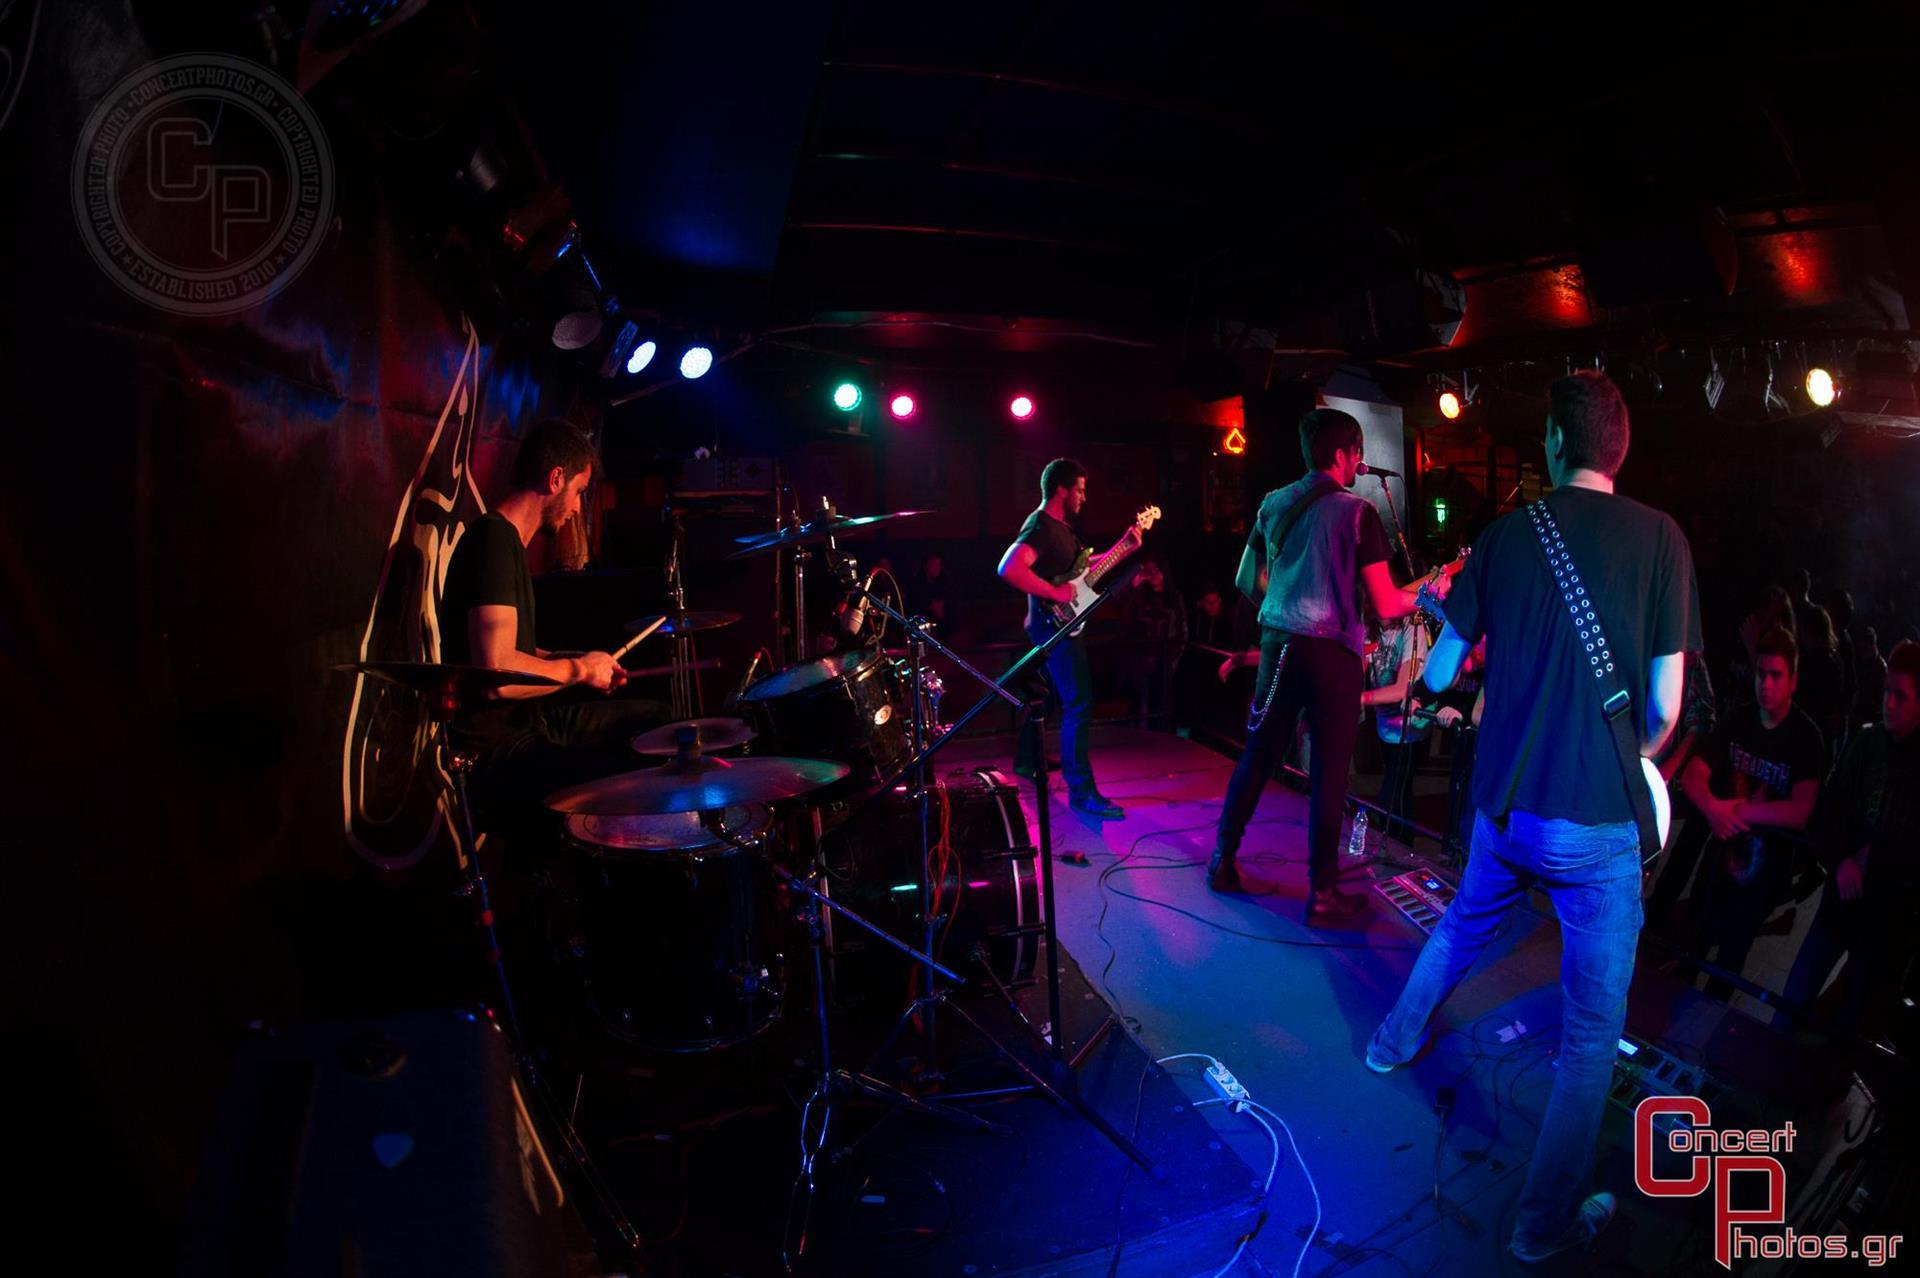 Battle Of The Bands Athens - Leg 3- photographer:  - ConcertPhotos - 20150104_2234_16